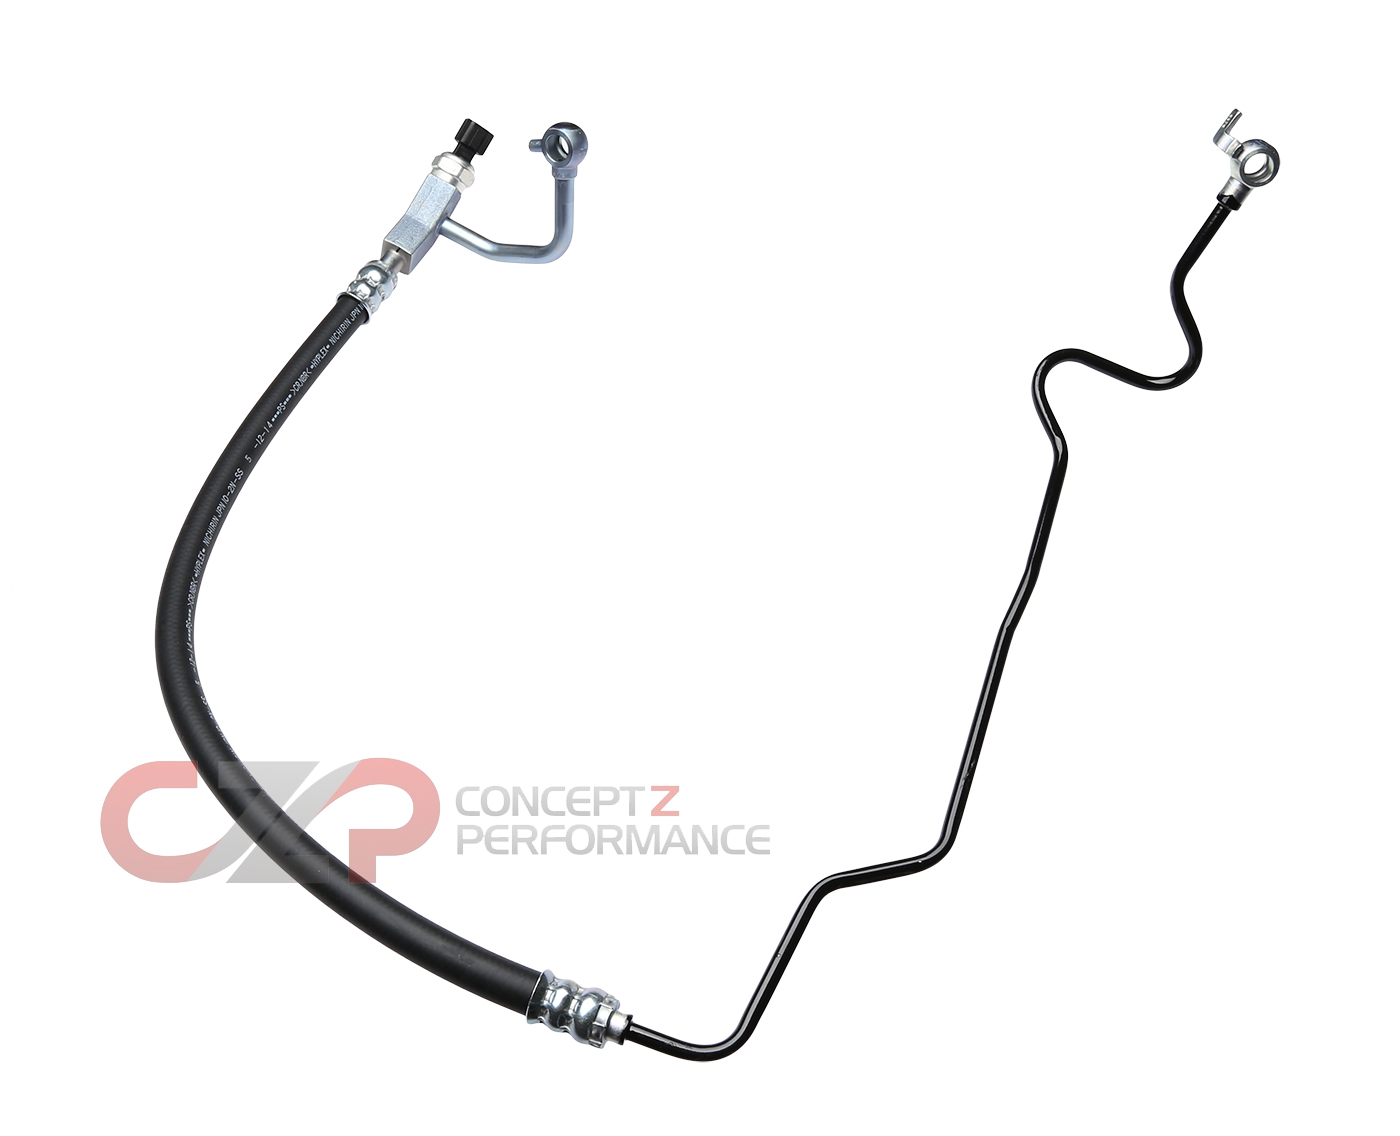 300zx High Pressure Power Steering Hose Replacement